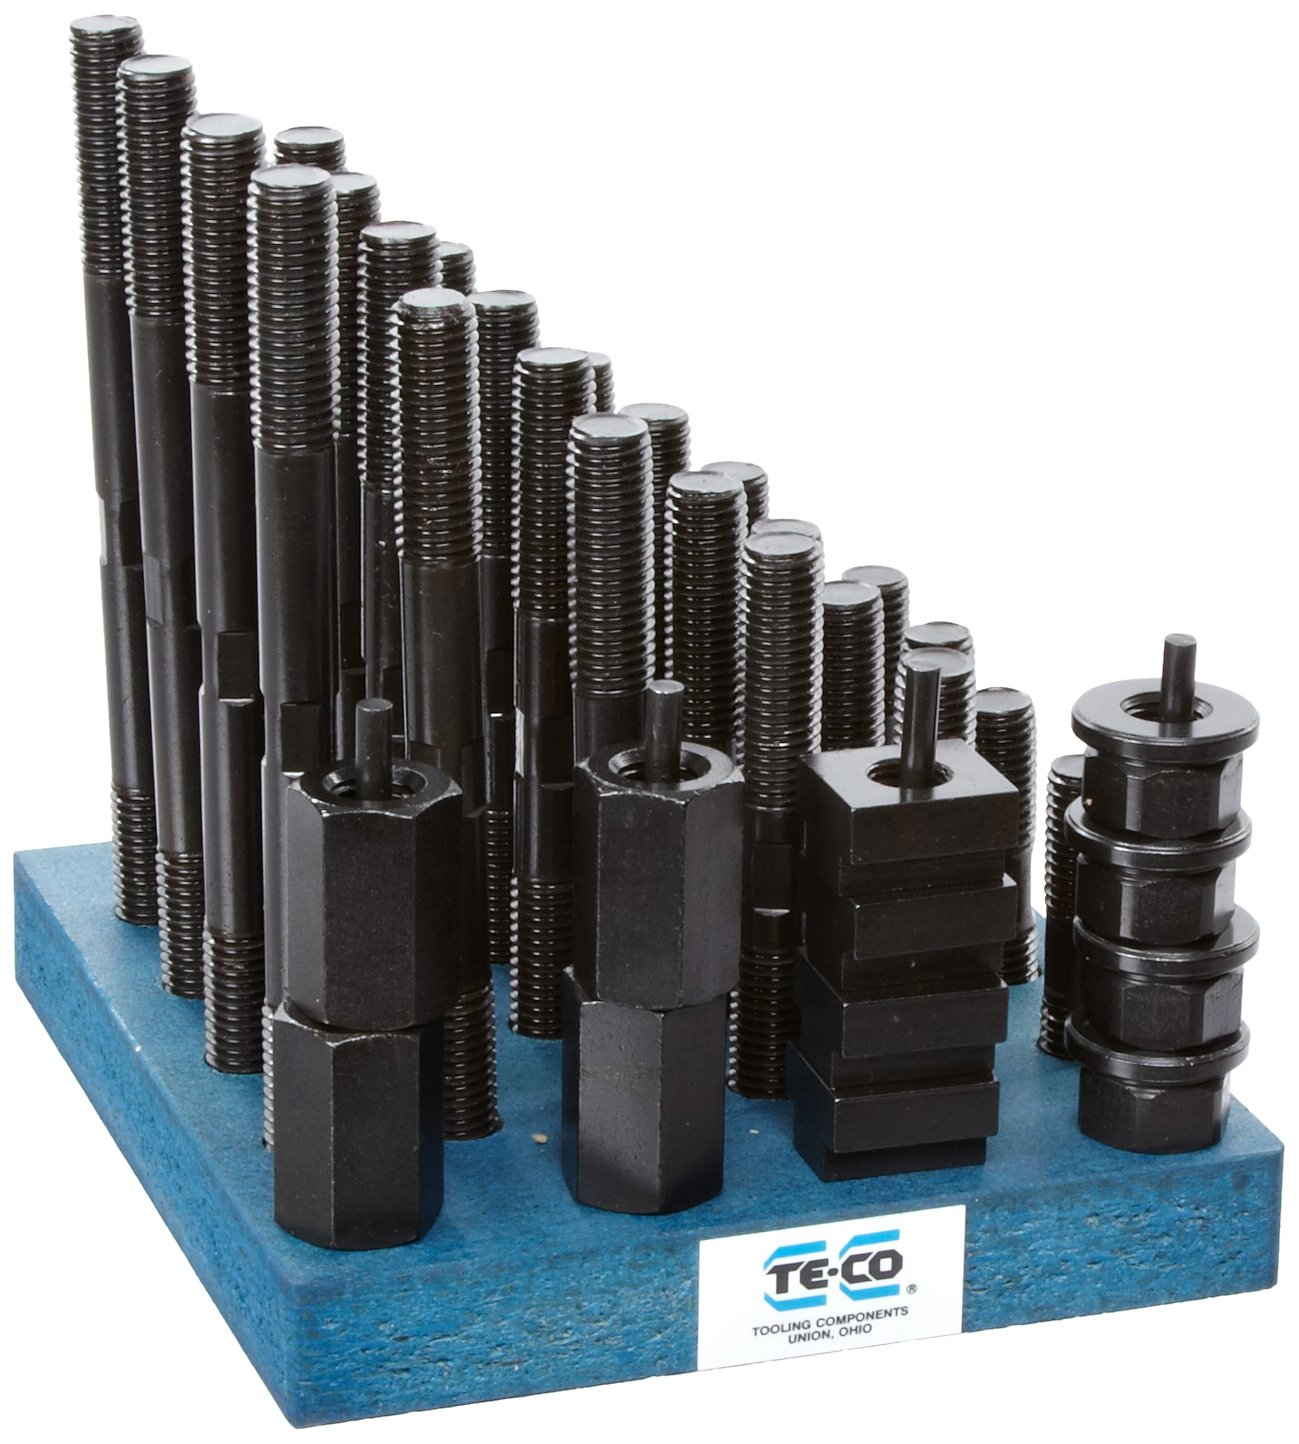 Te-Co 20608 38 Piece T-Nut and Stud Kit, 5/8''-11 Stud x 11/16'' Table T-Slot